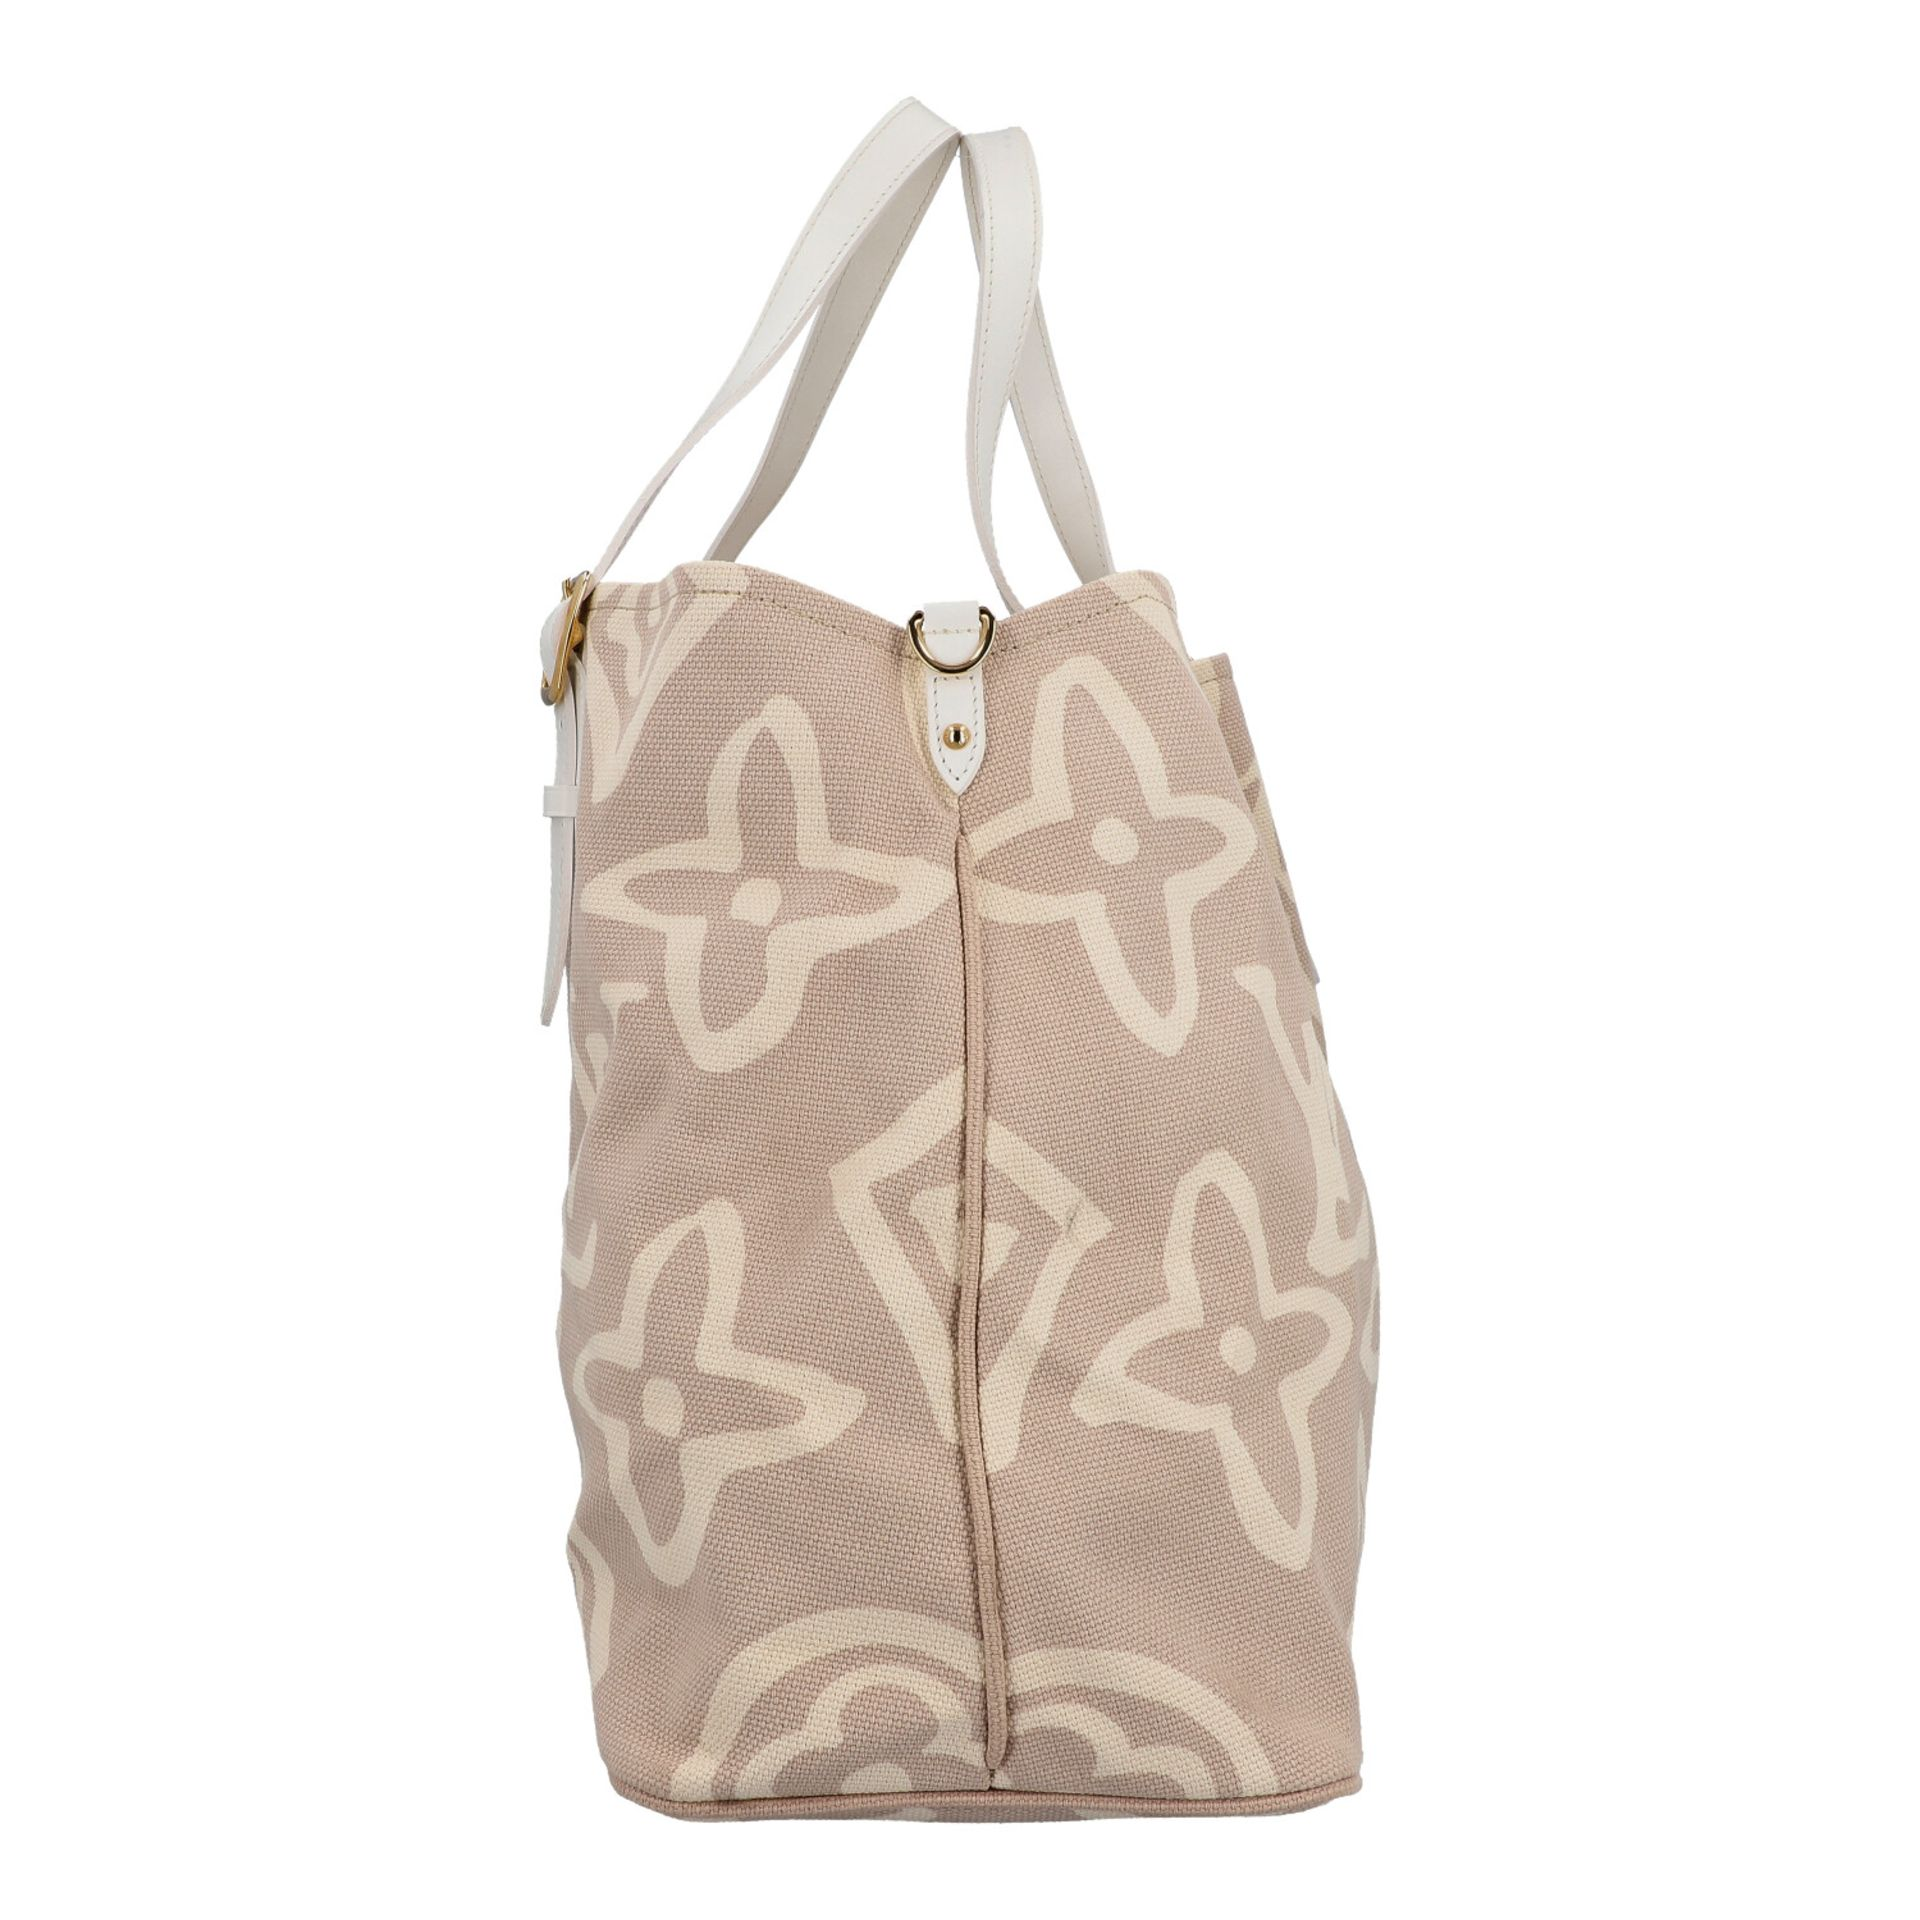 "LOUIS VUITTON Shopper ""TAHITIENNE GM"", Koll.: 2008 Designed by Marc Jacobs, inspiriert - Image 3 of 9"